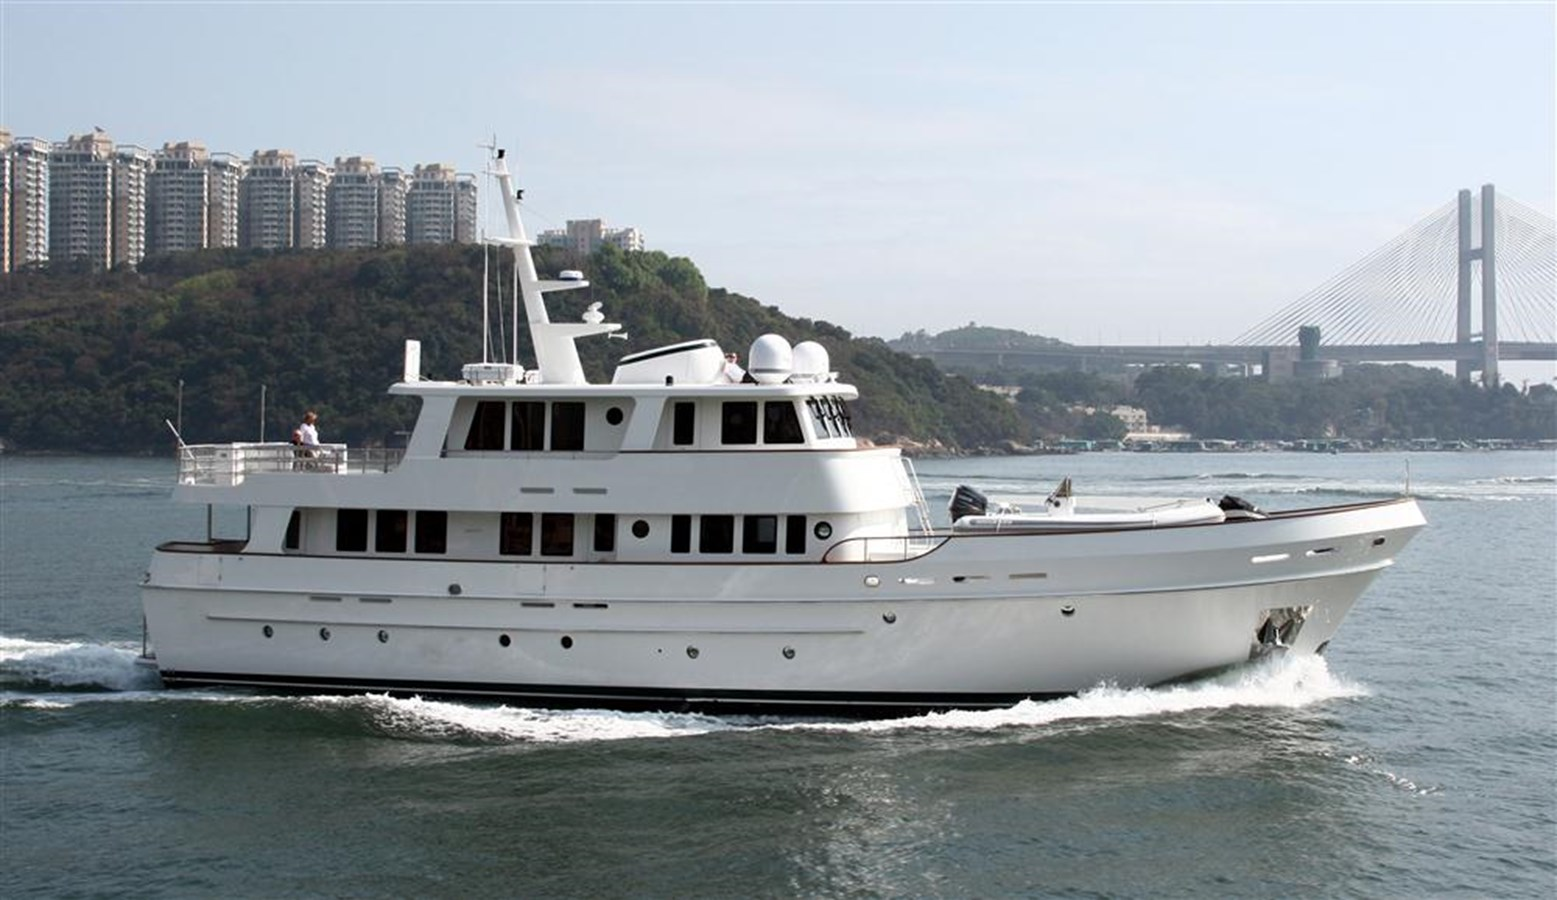 2019 CHEOY LEE Expedition Series Motor Yacht For Sale